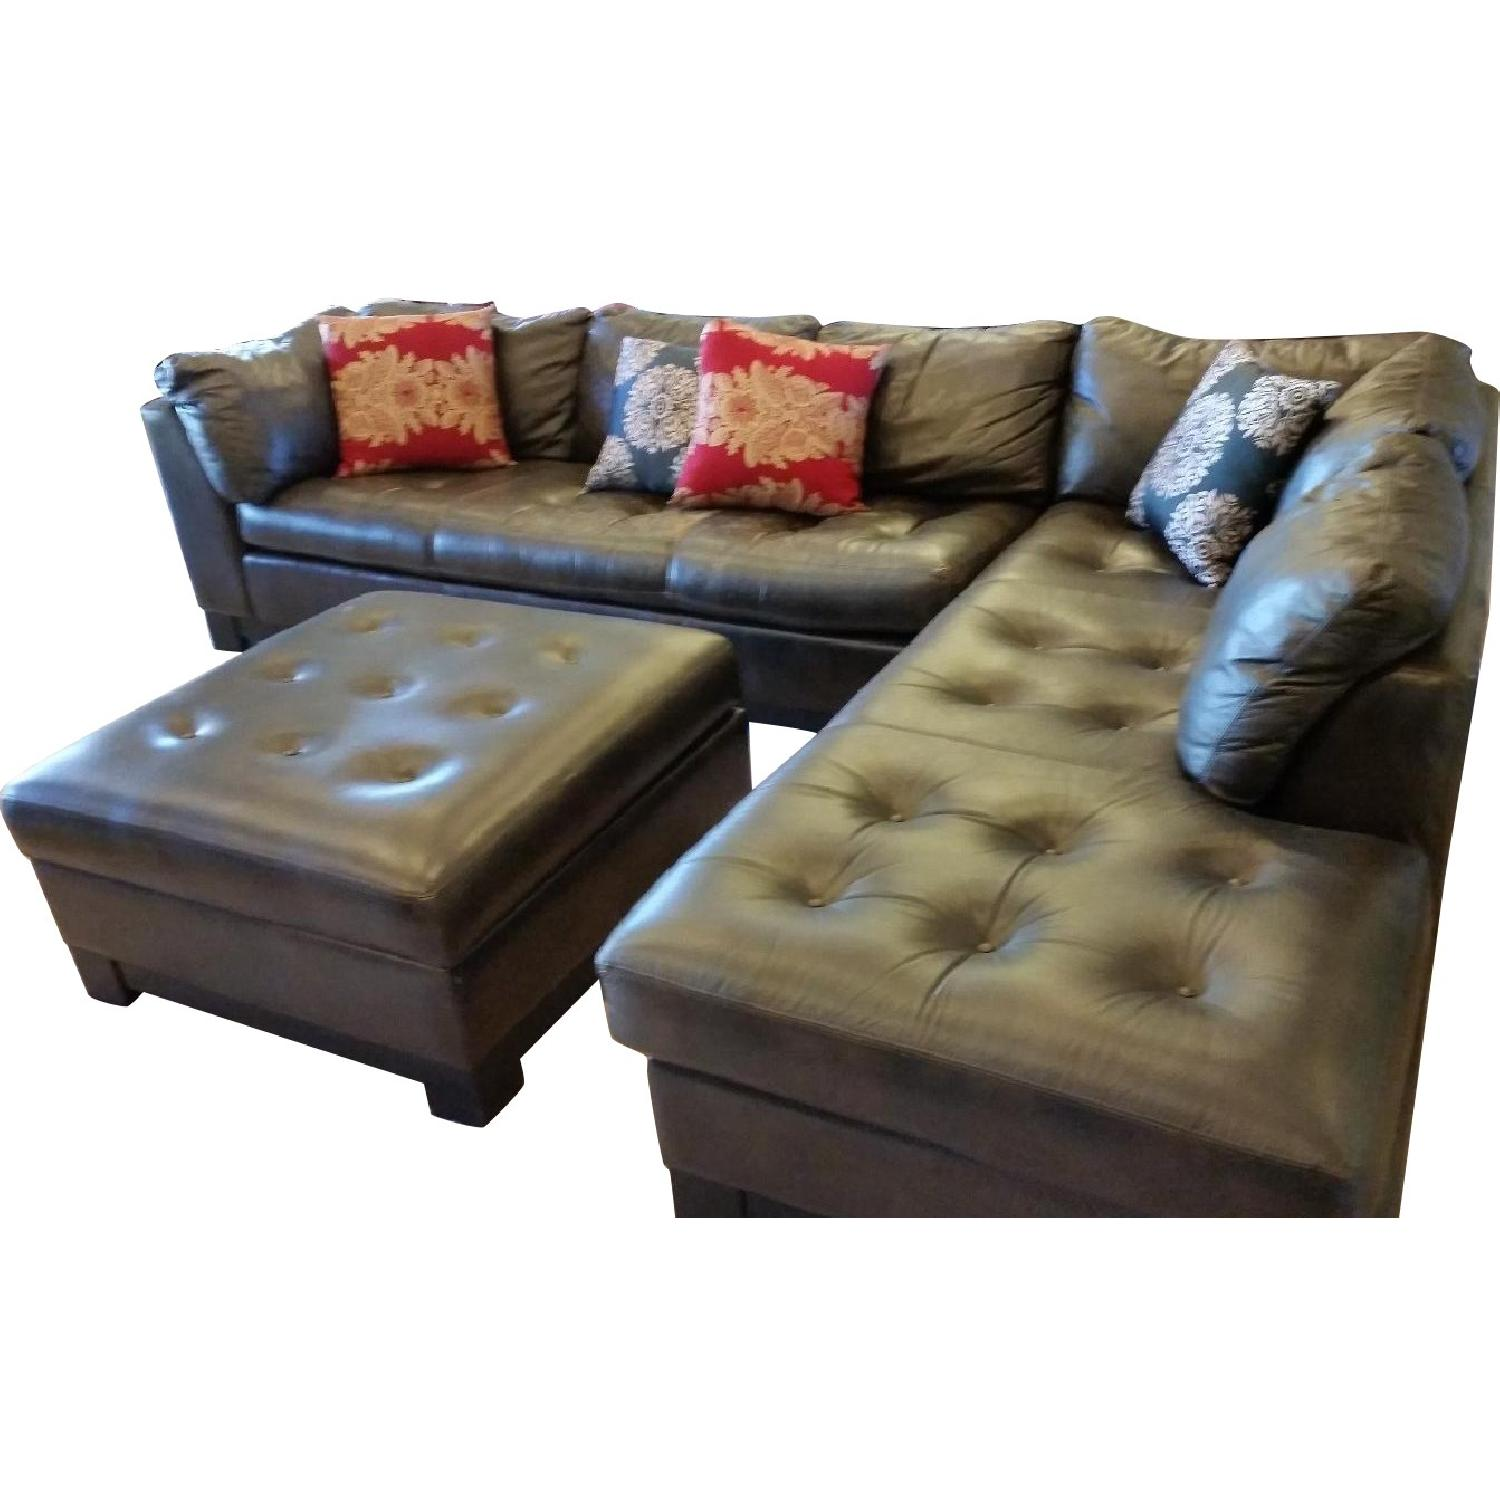 Brown Tufted Leather 2-Piece Sectional Sofa - image-0